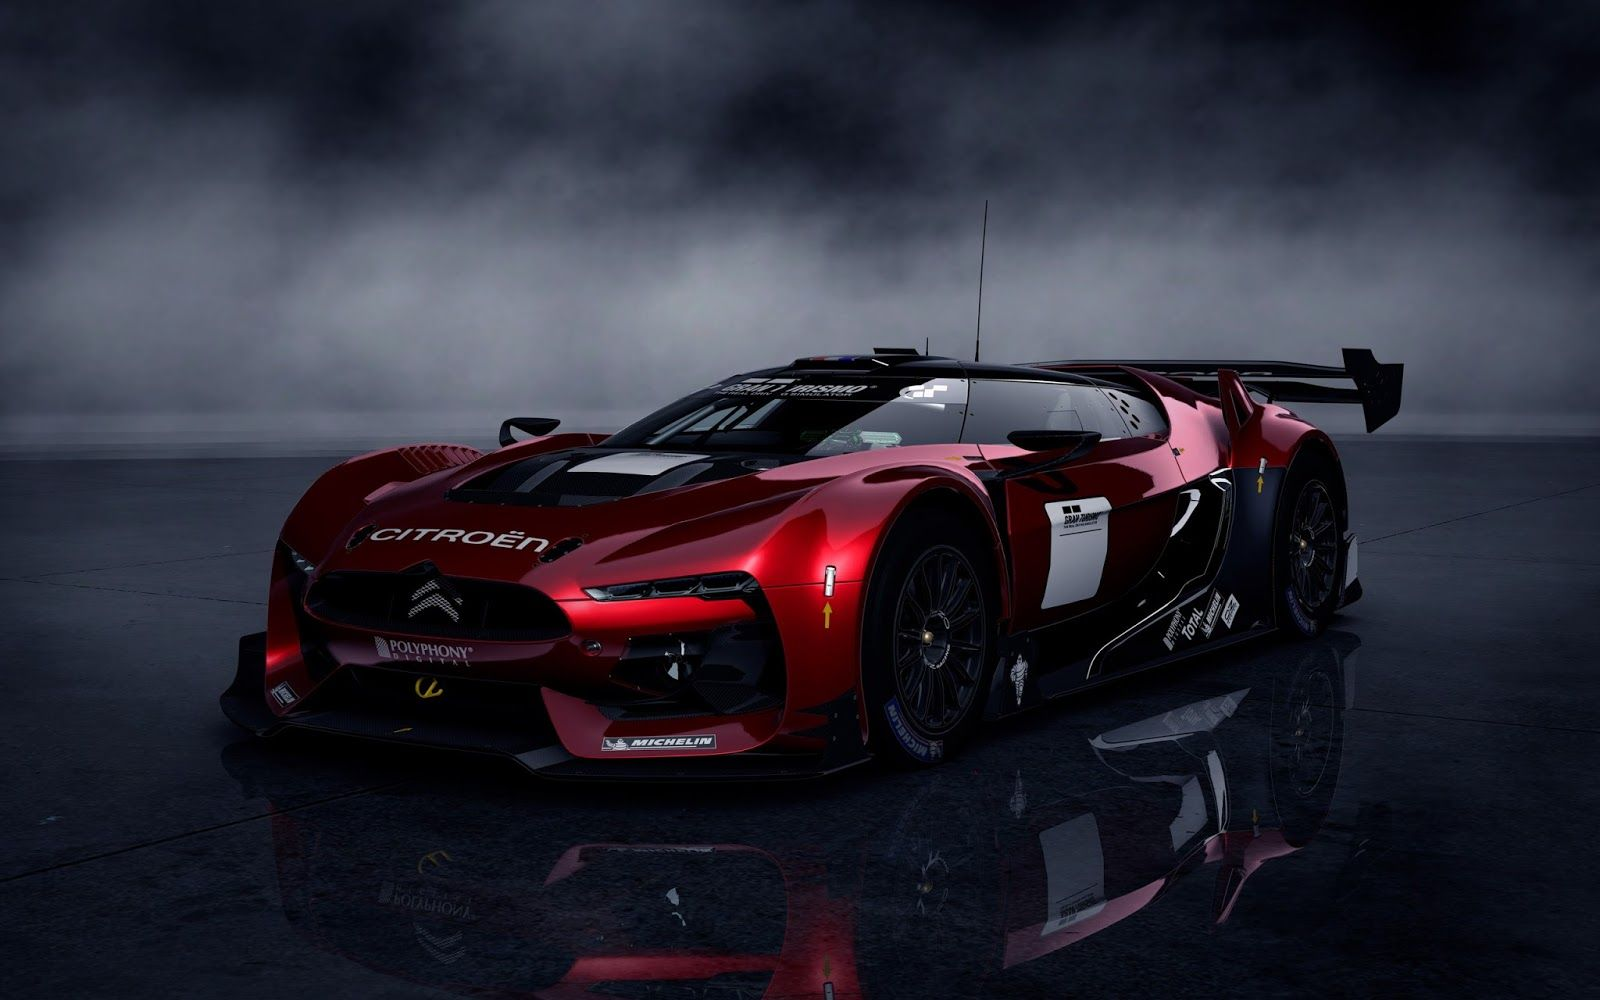 3d Cars Hd Wallpapers Gran Turismo Wallpapers Carro Carros Com Estilo